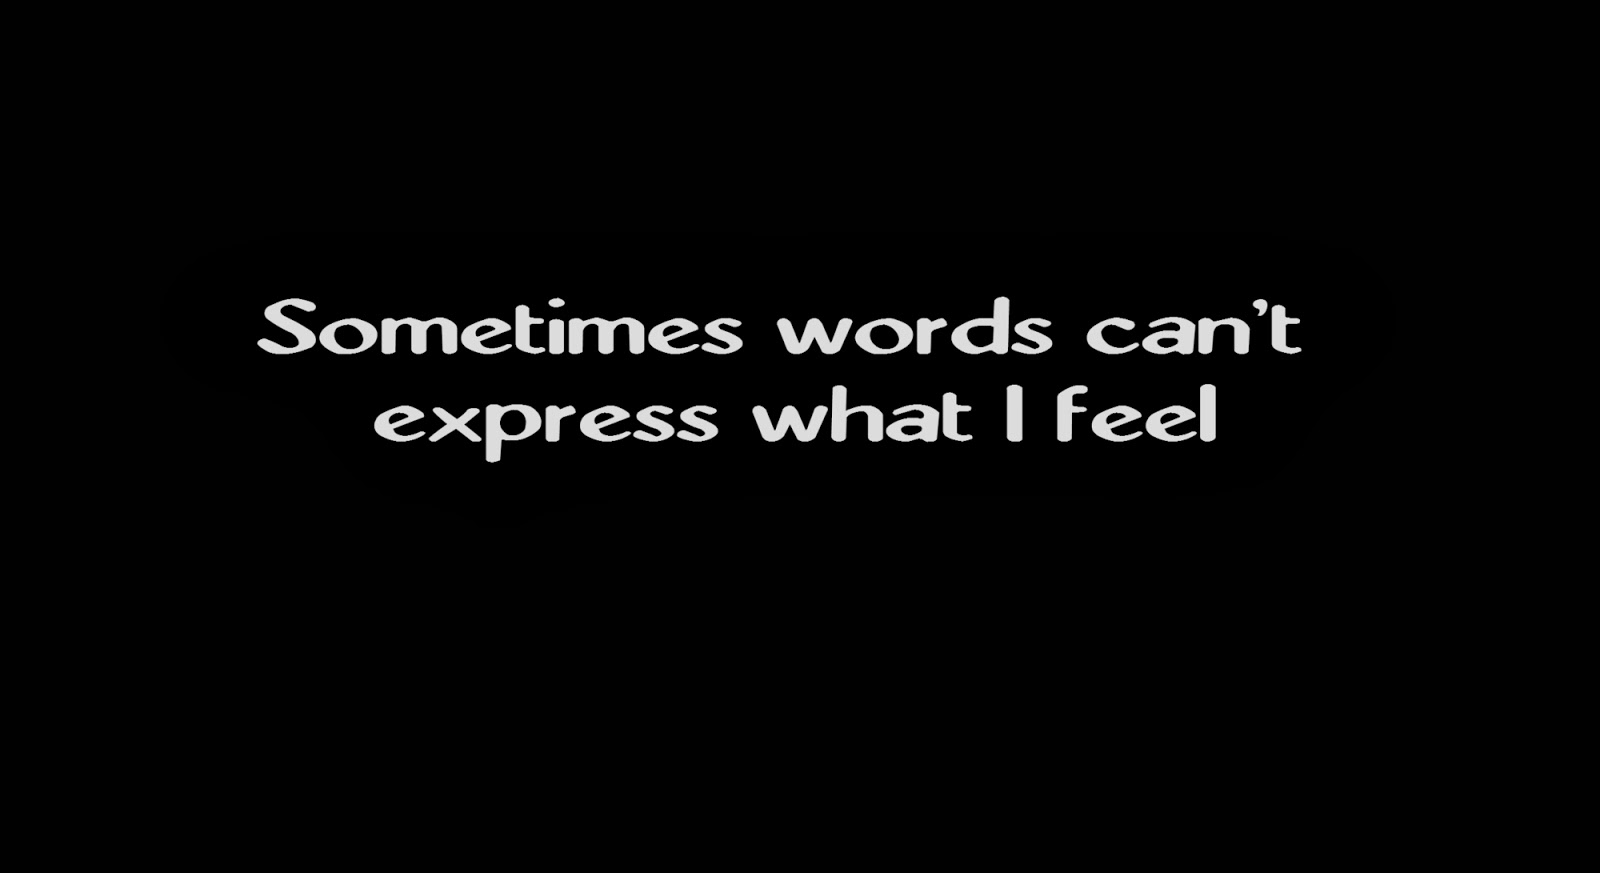 Sometimes words can't express what I feel